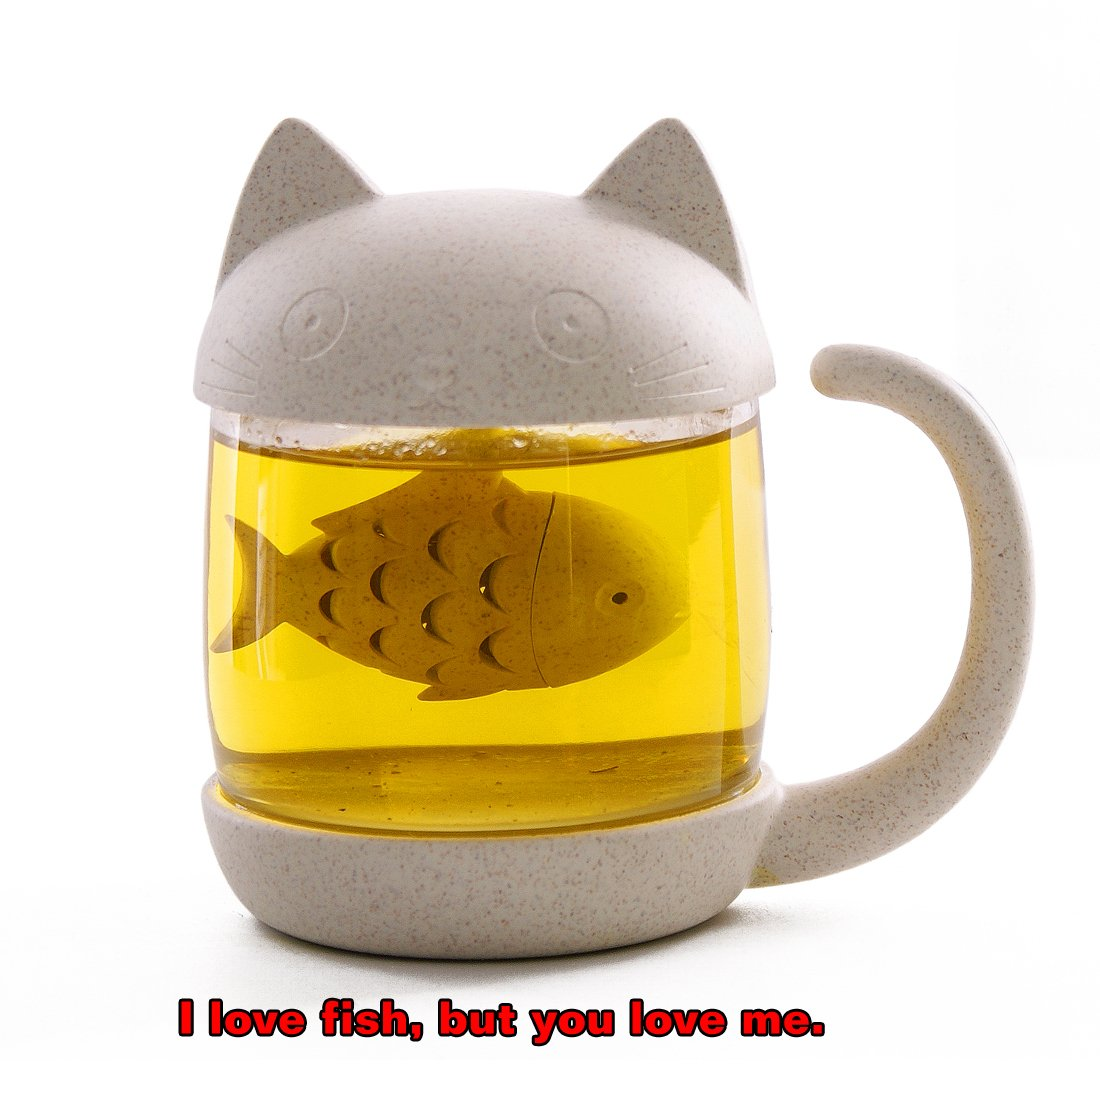 ALEXAMAZING Small Cute Design Cat Style Glass Tea Cup with Fish Infuser and Lid for Office Home Afternoon Tea Time; Perfect Gift Idea(8.5 oz/250ml, Meow)